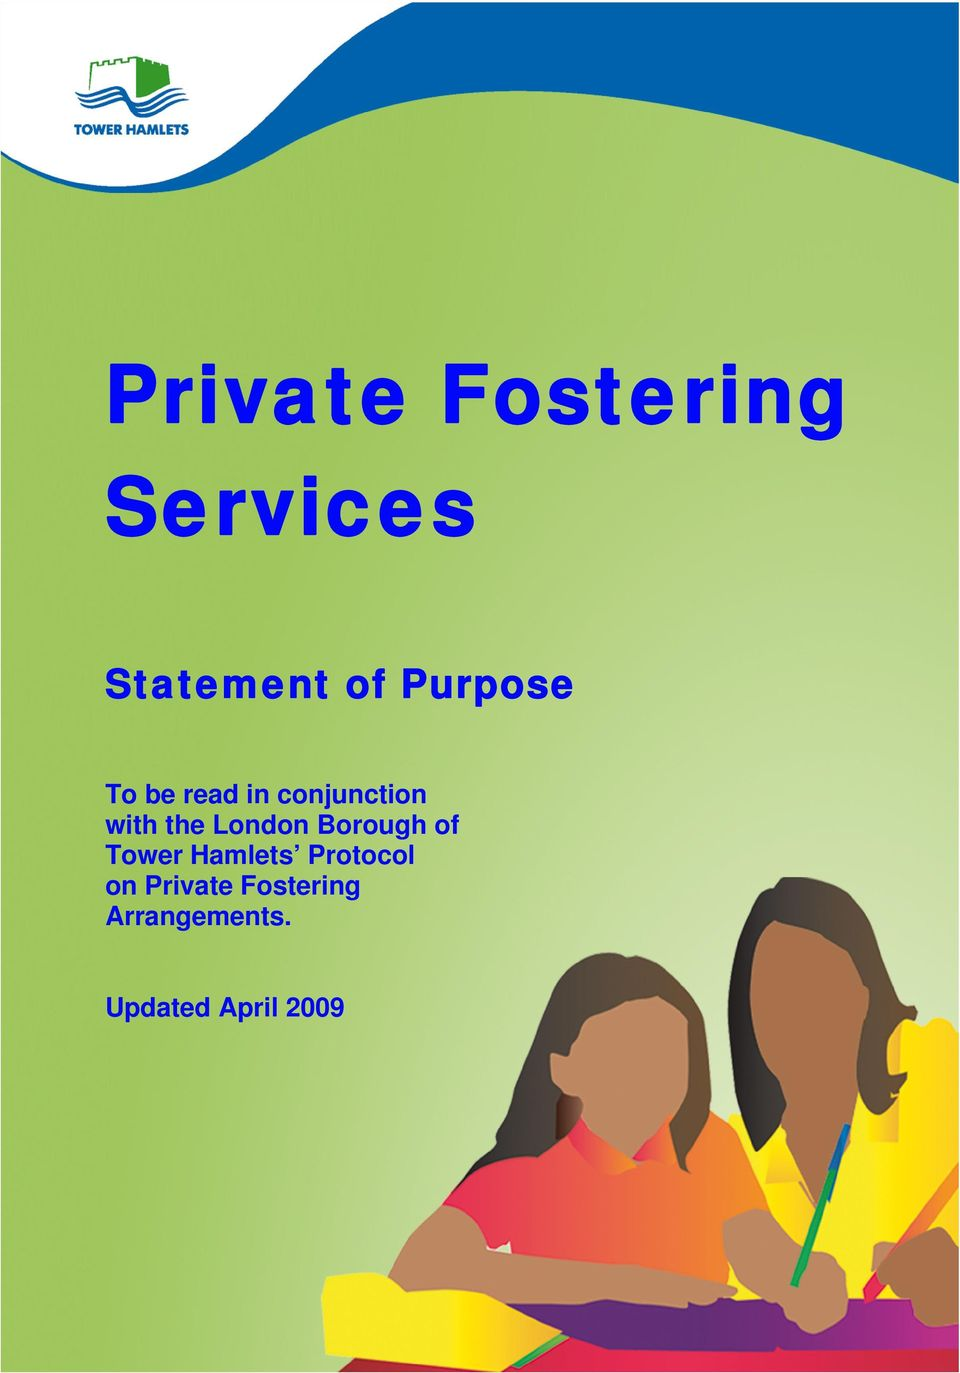 London Borough of Tower Hamlets Protocol on